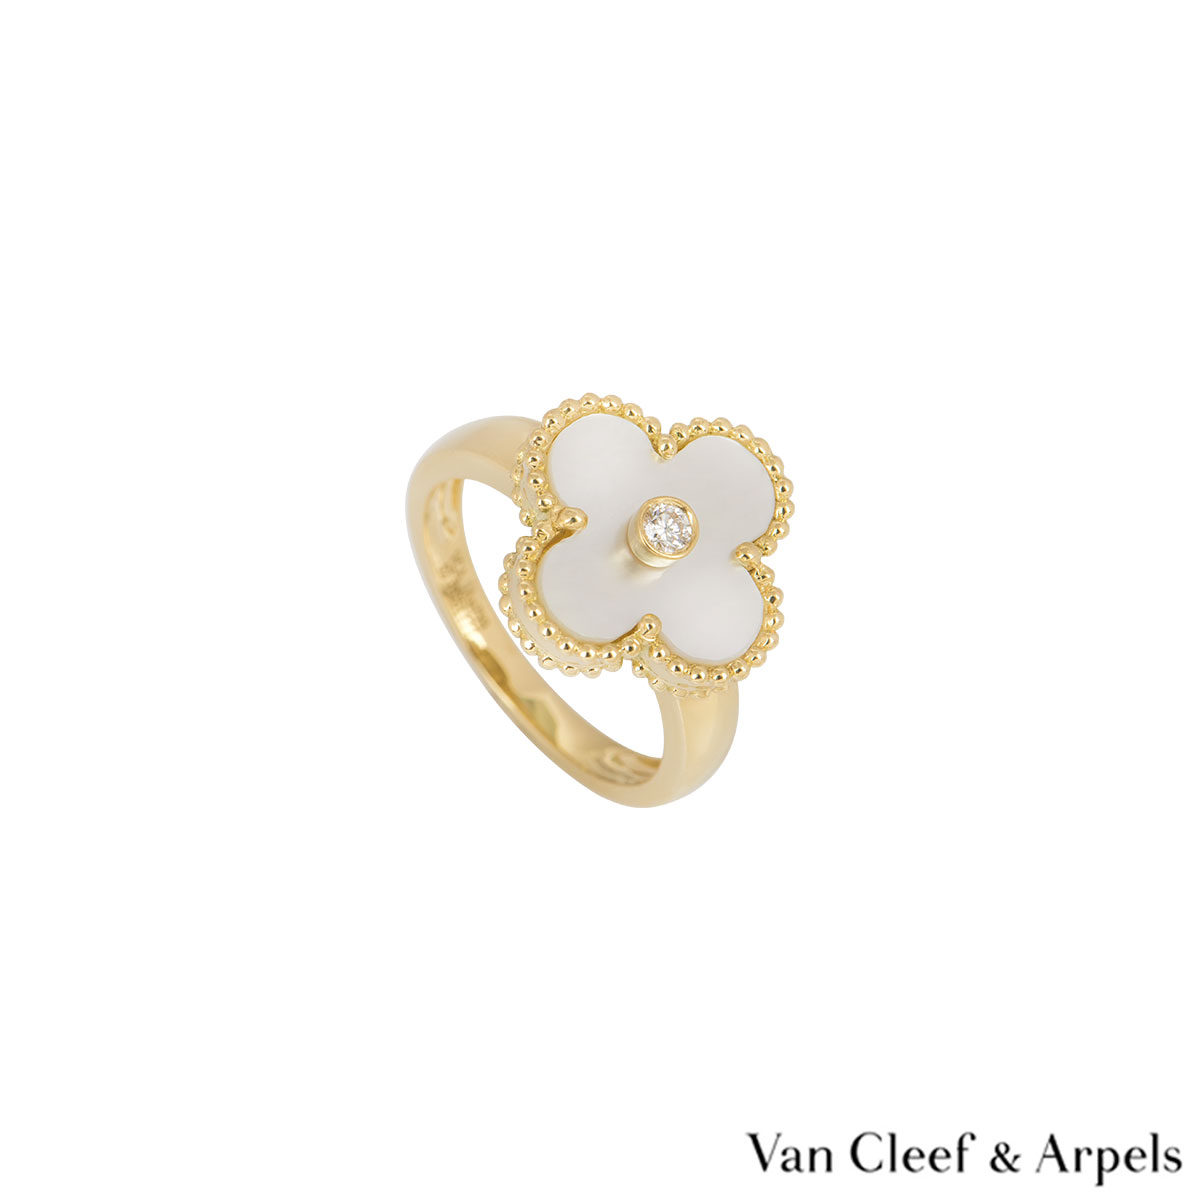 Van Cleef & Arpels Yellow Gold Diamond Alhambra Ring VCARA41100